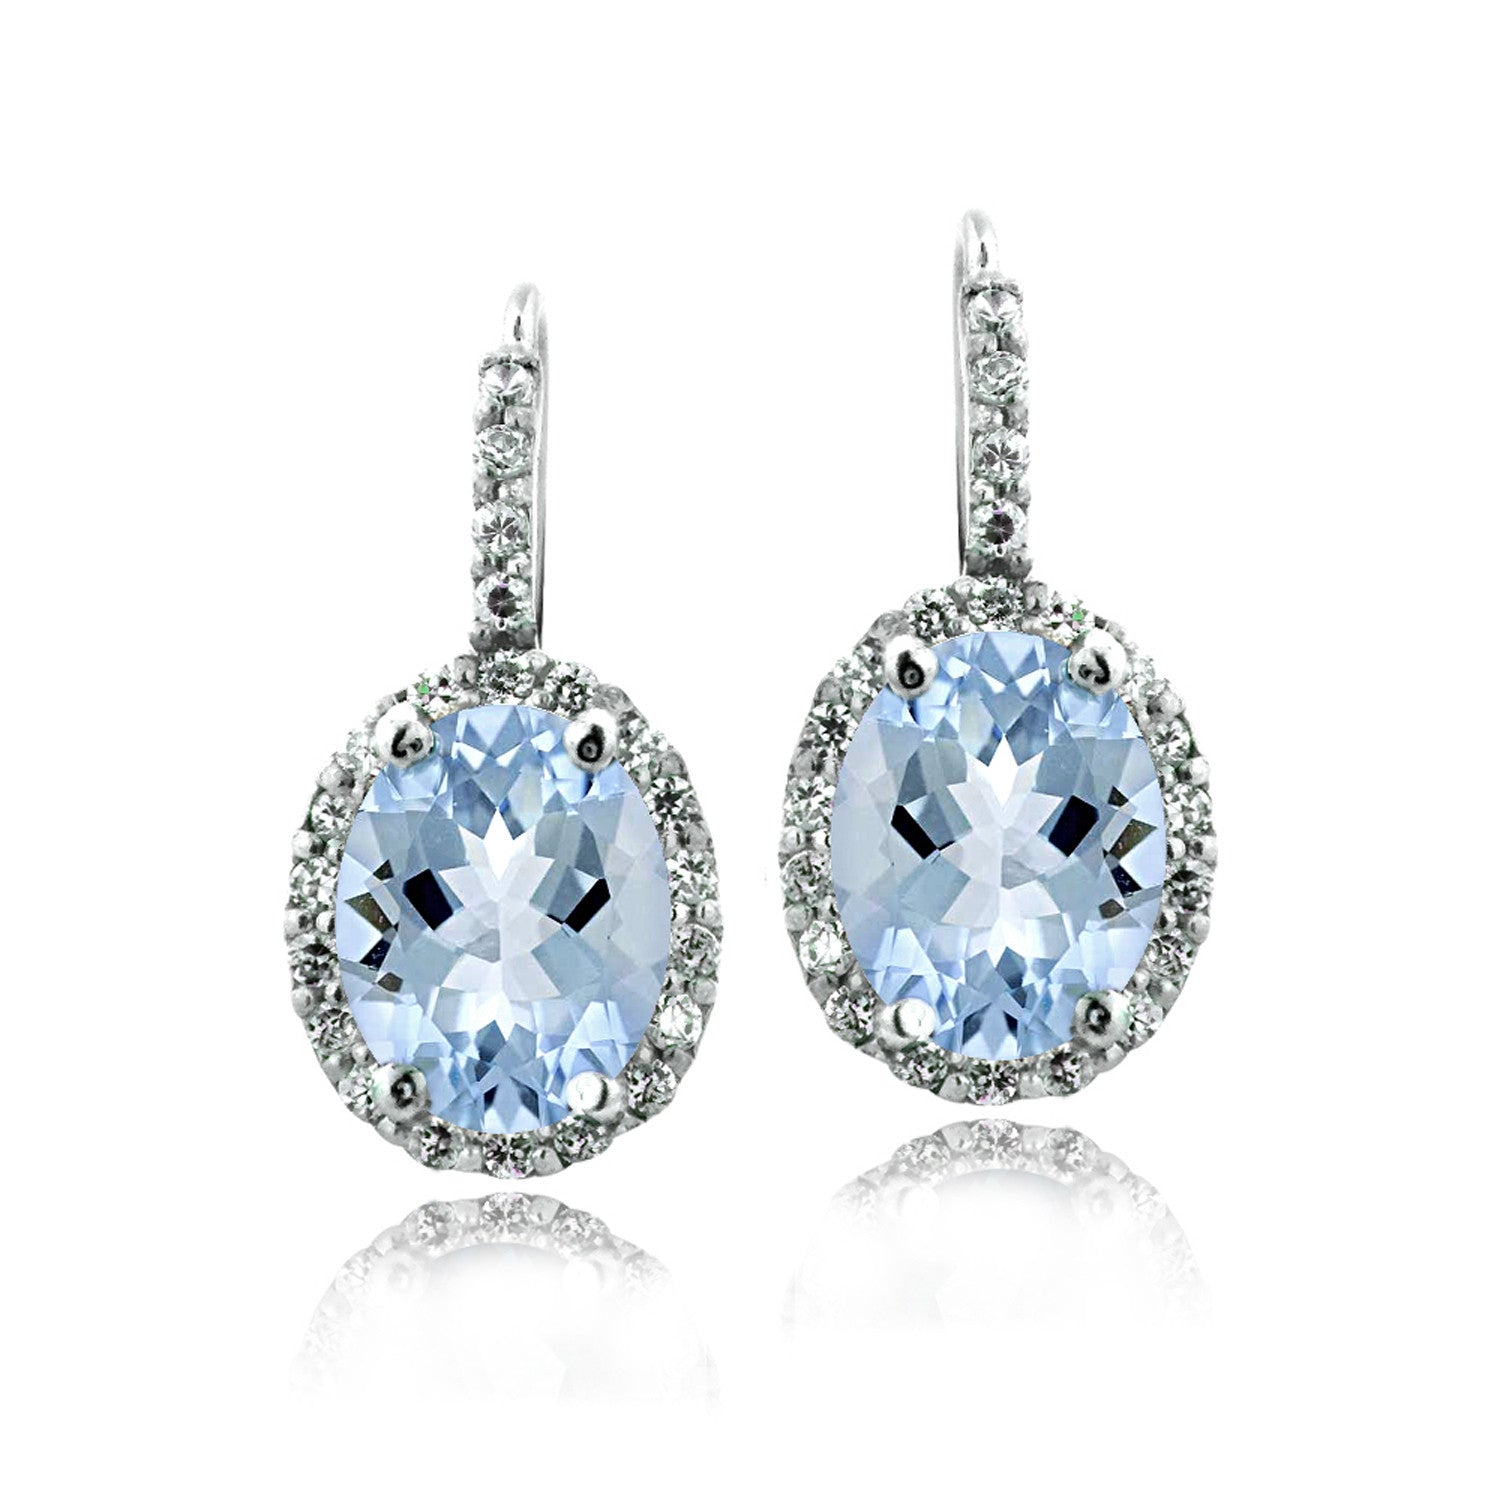 Oval Cut Gemstone Accent Sterling Silver Leverback Birthstone Earrings - December Blue Topaz